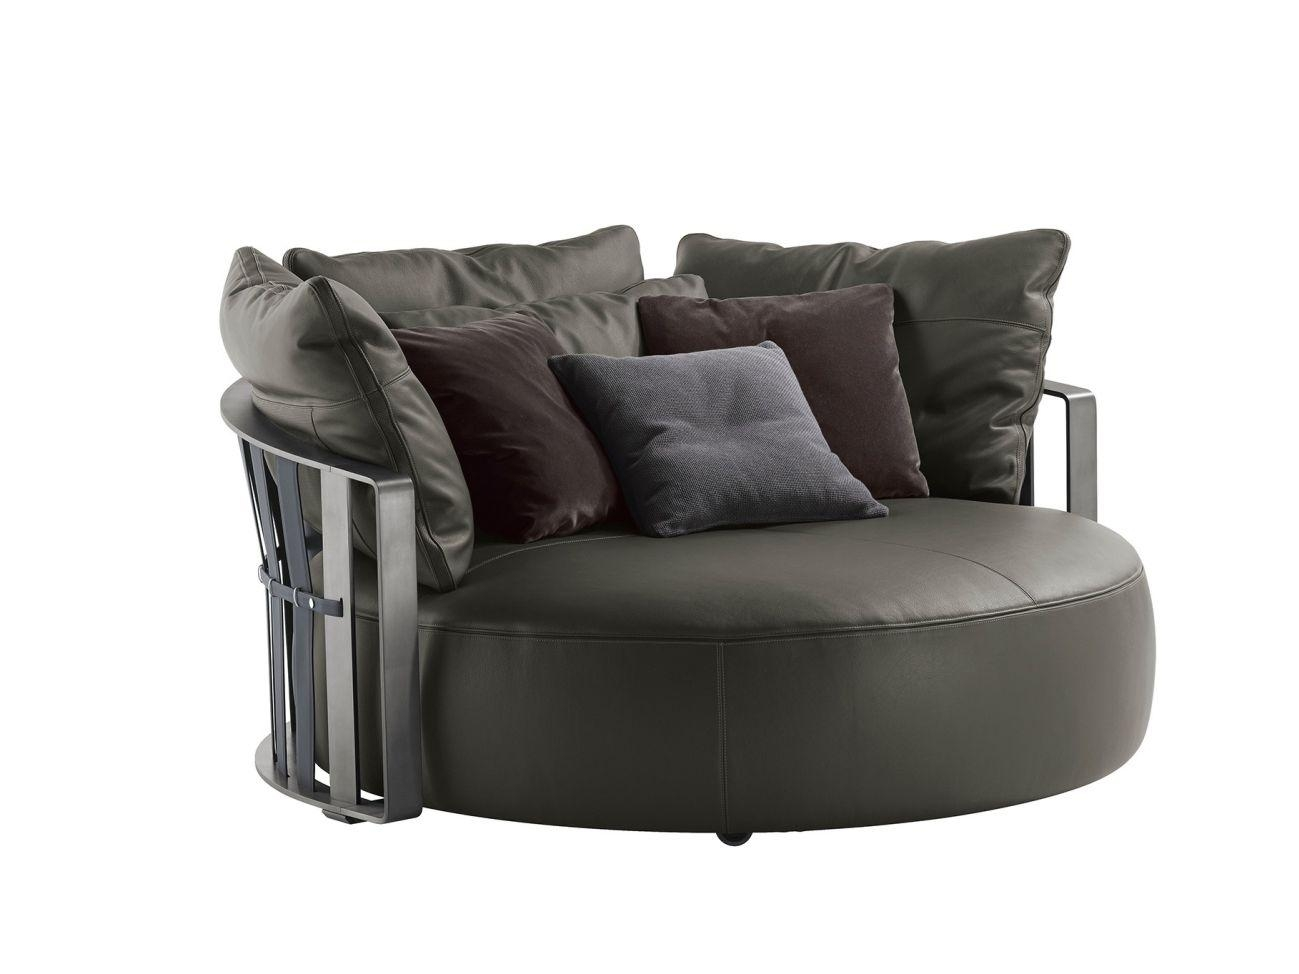 Sofas Center : Large Round Sofa Chair Cheaplarge Cheaptrendy Inside Round Sofa Chairs (Image 16 of 20)